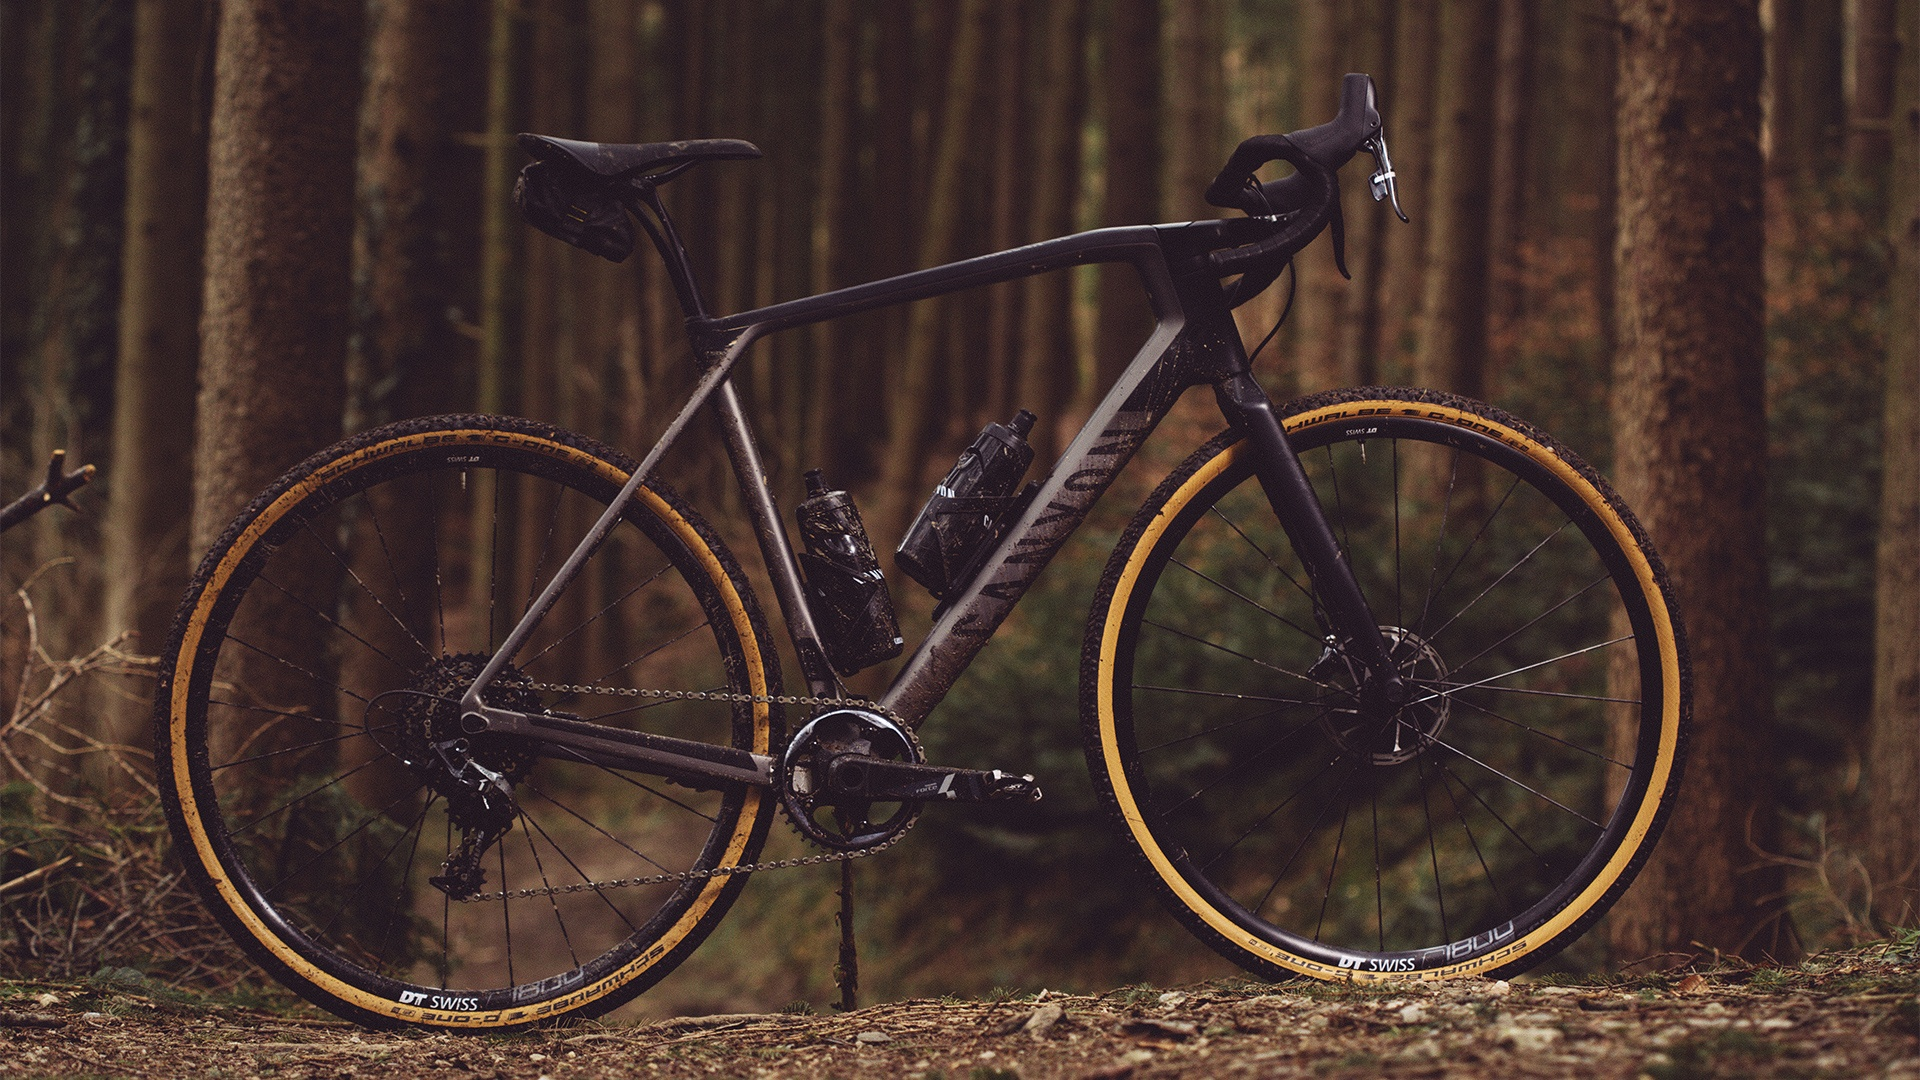 The Canyon Grail is the gravel bike you've been searching